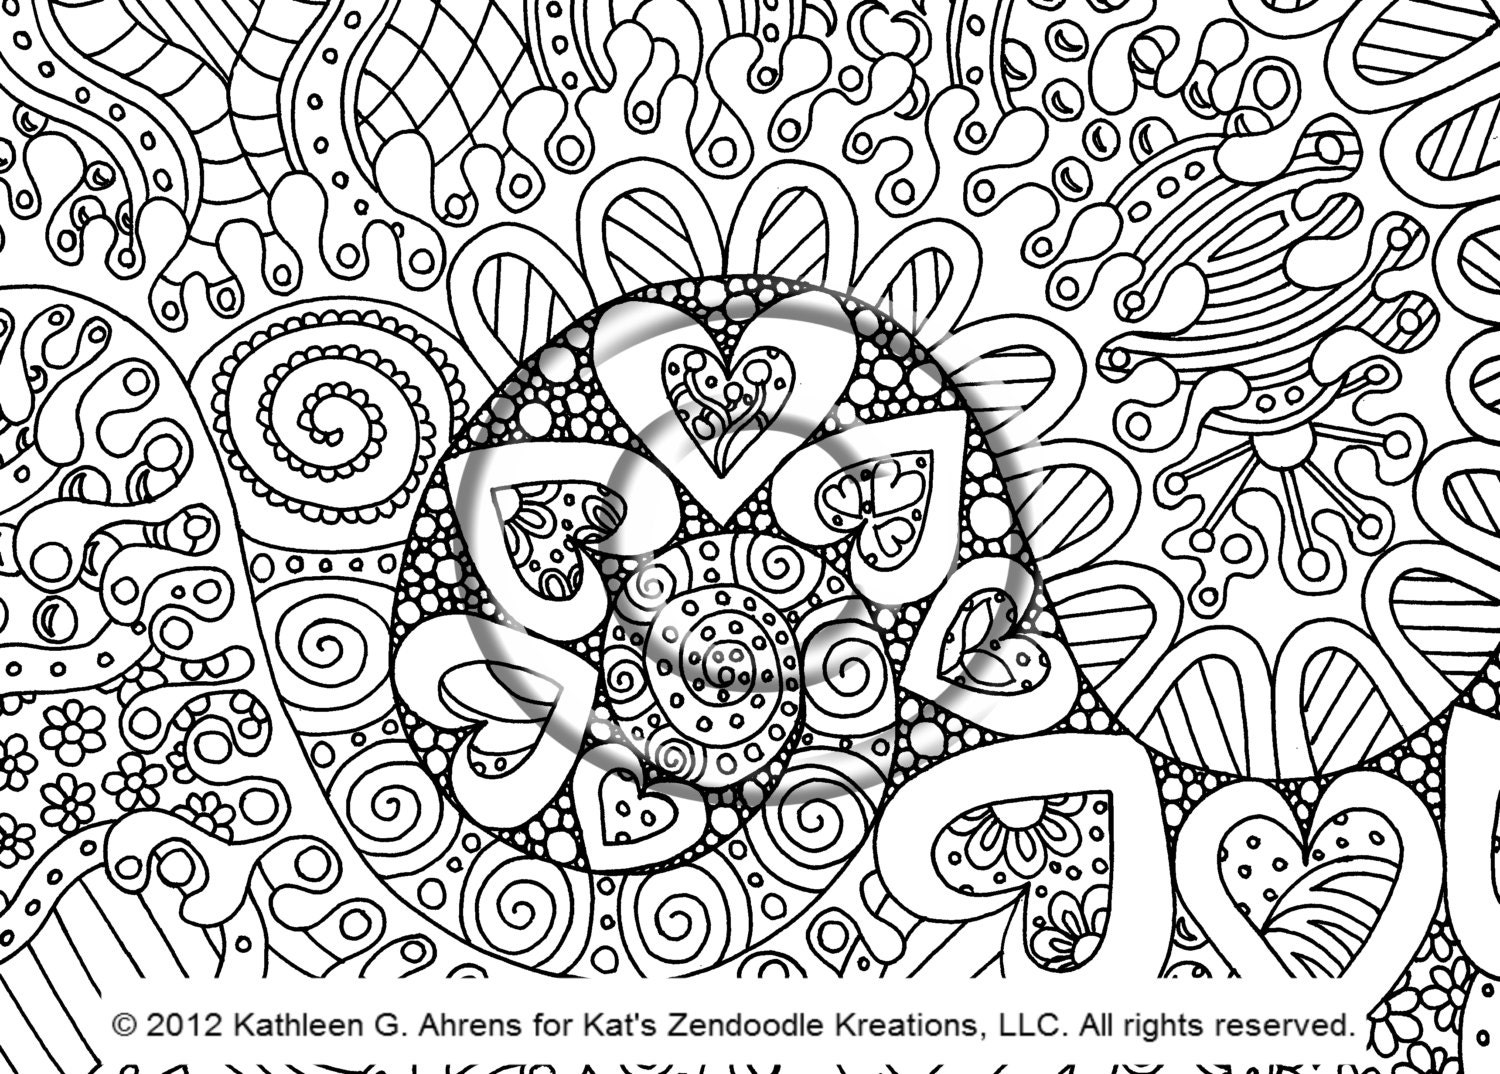 Hippie Trippy Coloring Sheets Images amp Pictures Becuo